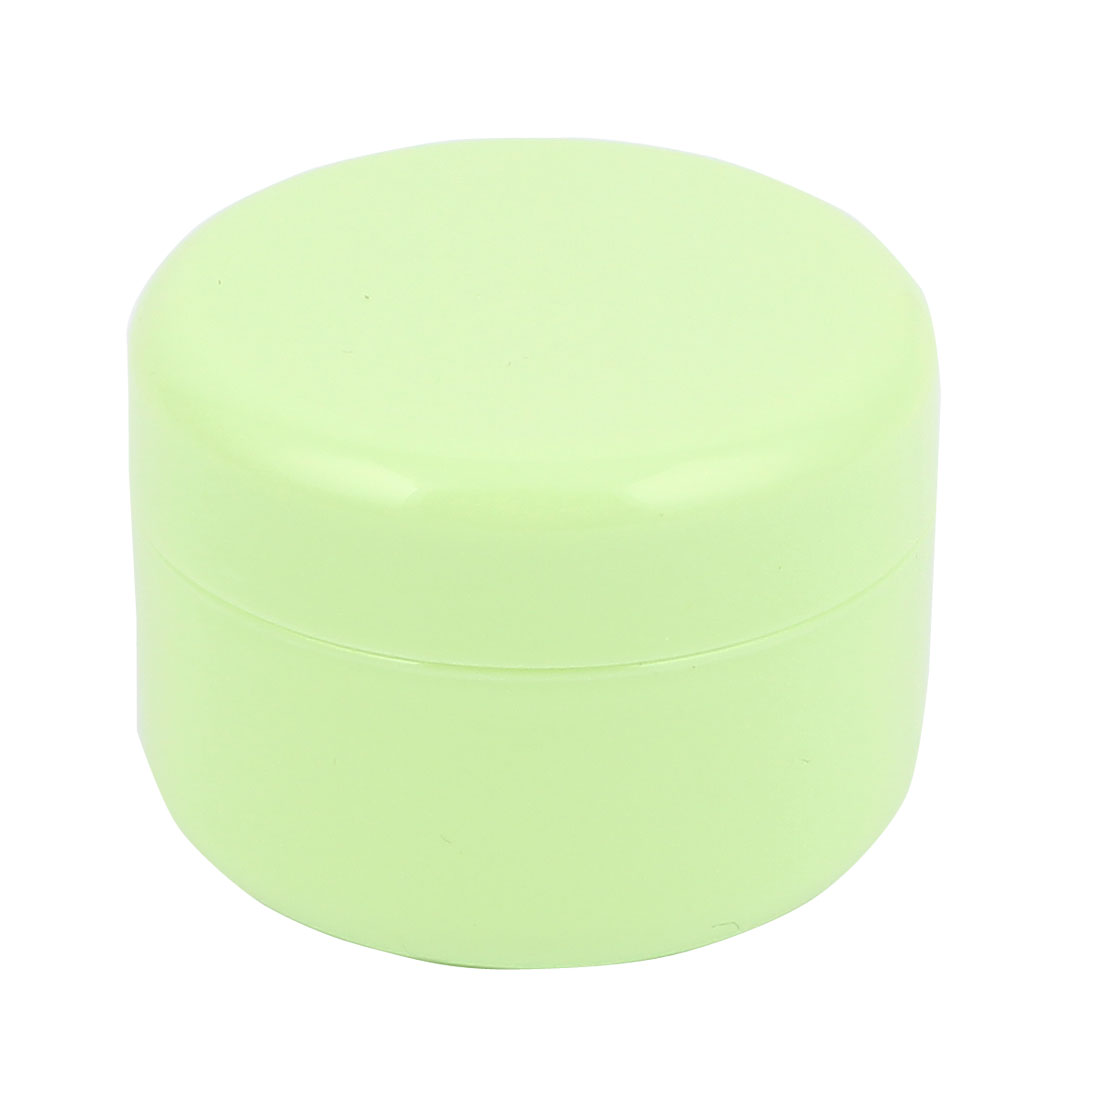 Green Plastic Makeup Cosmetic Empty Jar Pot Face Cream Eyeshadow Moisturizer Bottle Container 100g